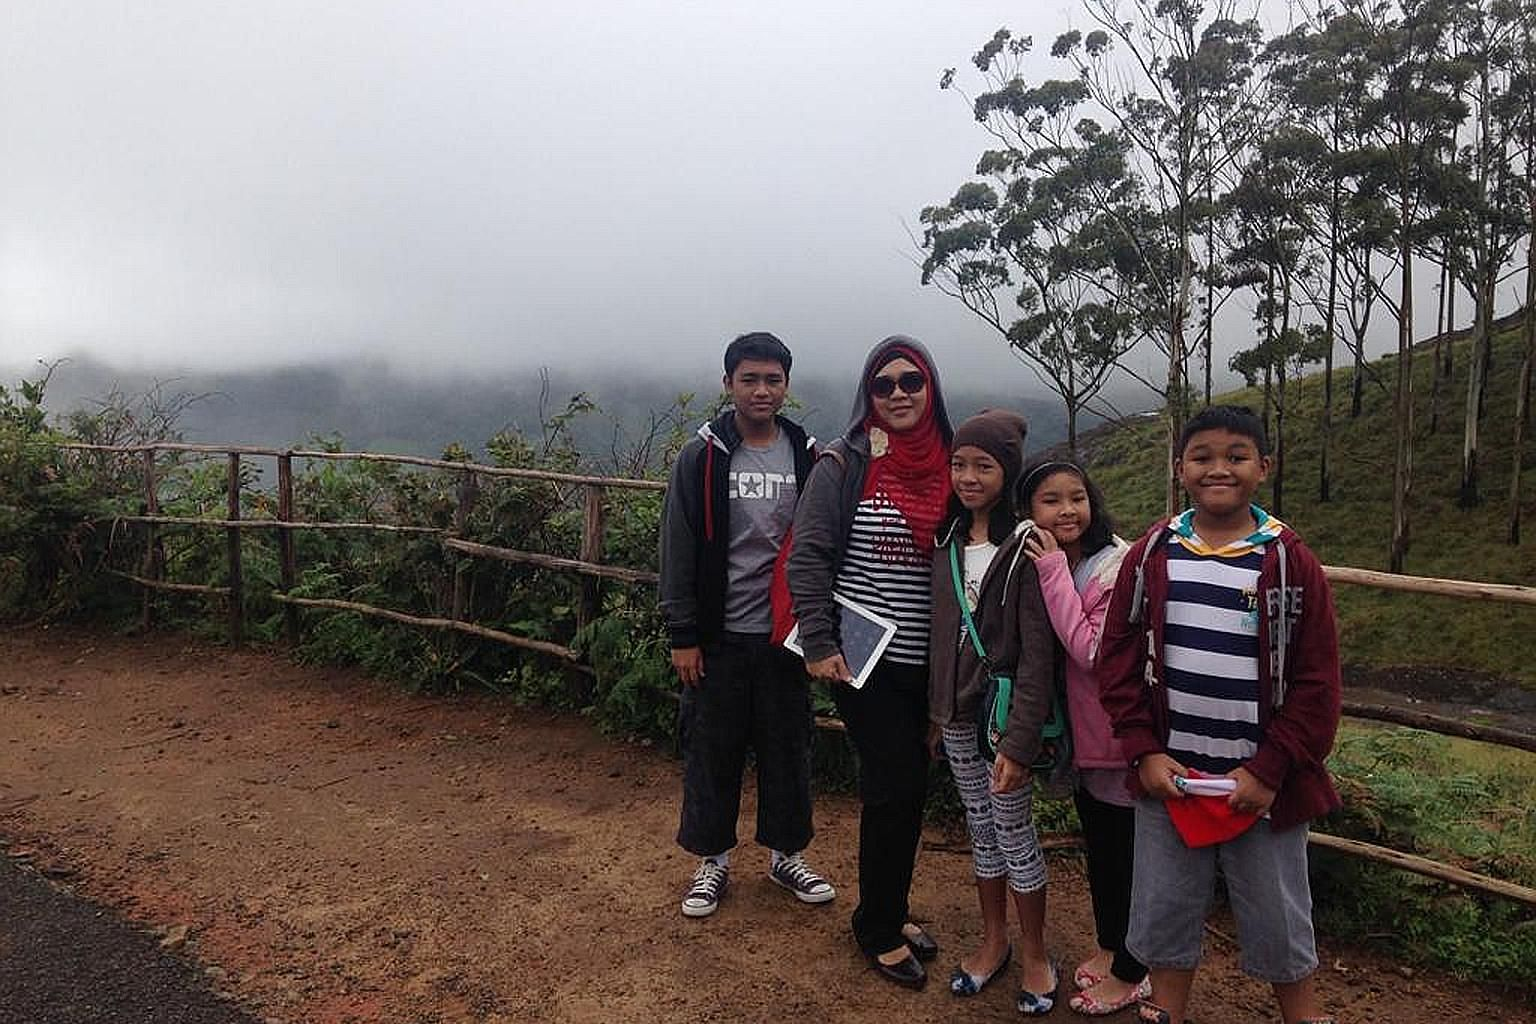 Madam Nur Azah Ismail with her four children (from left): Izz Amsyar, Iffah Irdina, Ilya Insyirah and Irfan Afiq, in Munnar, a town in India's Kerala state. The family lived in Chennai for about two years because of their father's work posting.